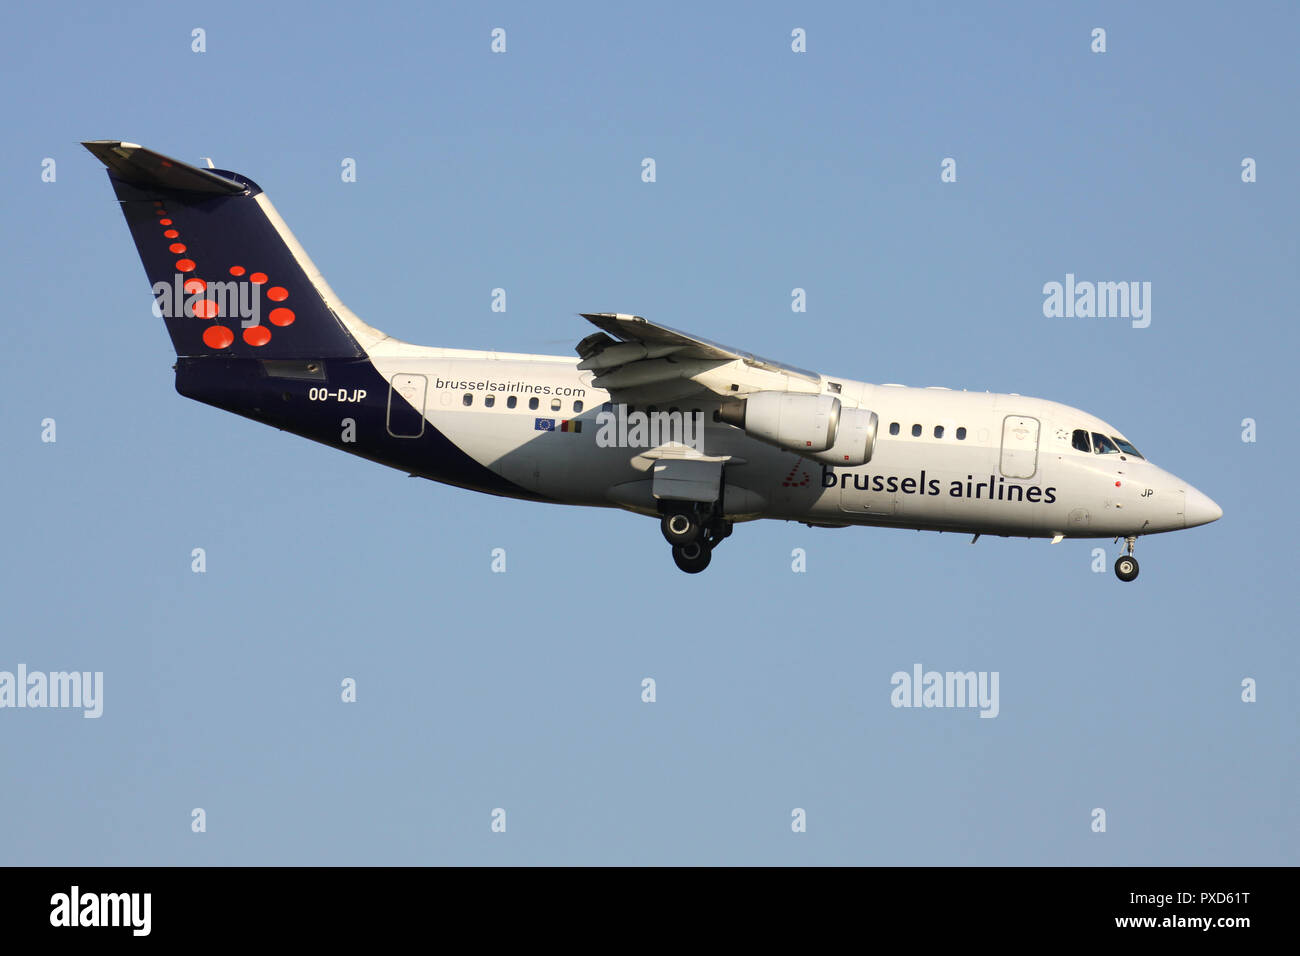 Belgian Brussels Airlines Avro RJ85 with registration OO-DJP on short final for runway 01 of Brussels Airport. - Stock Image